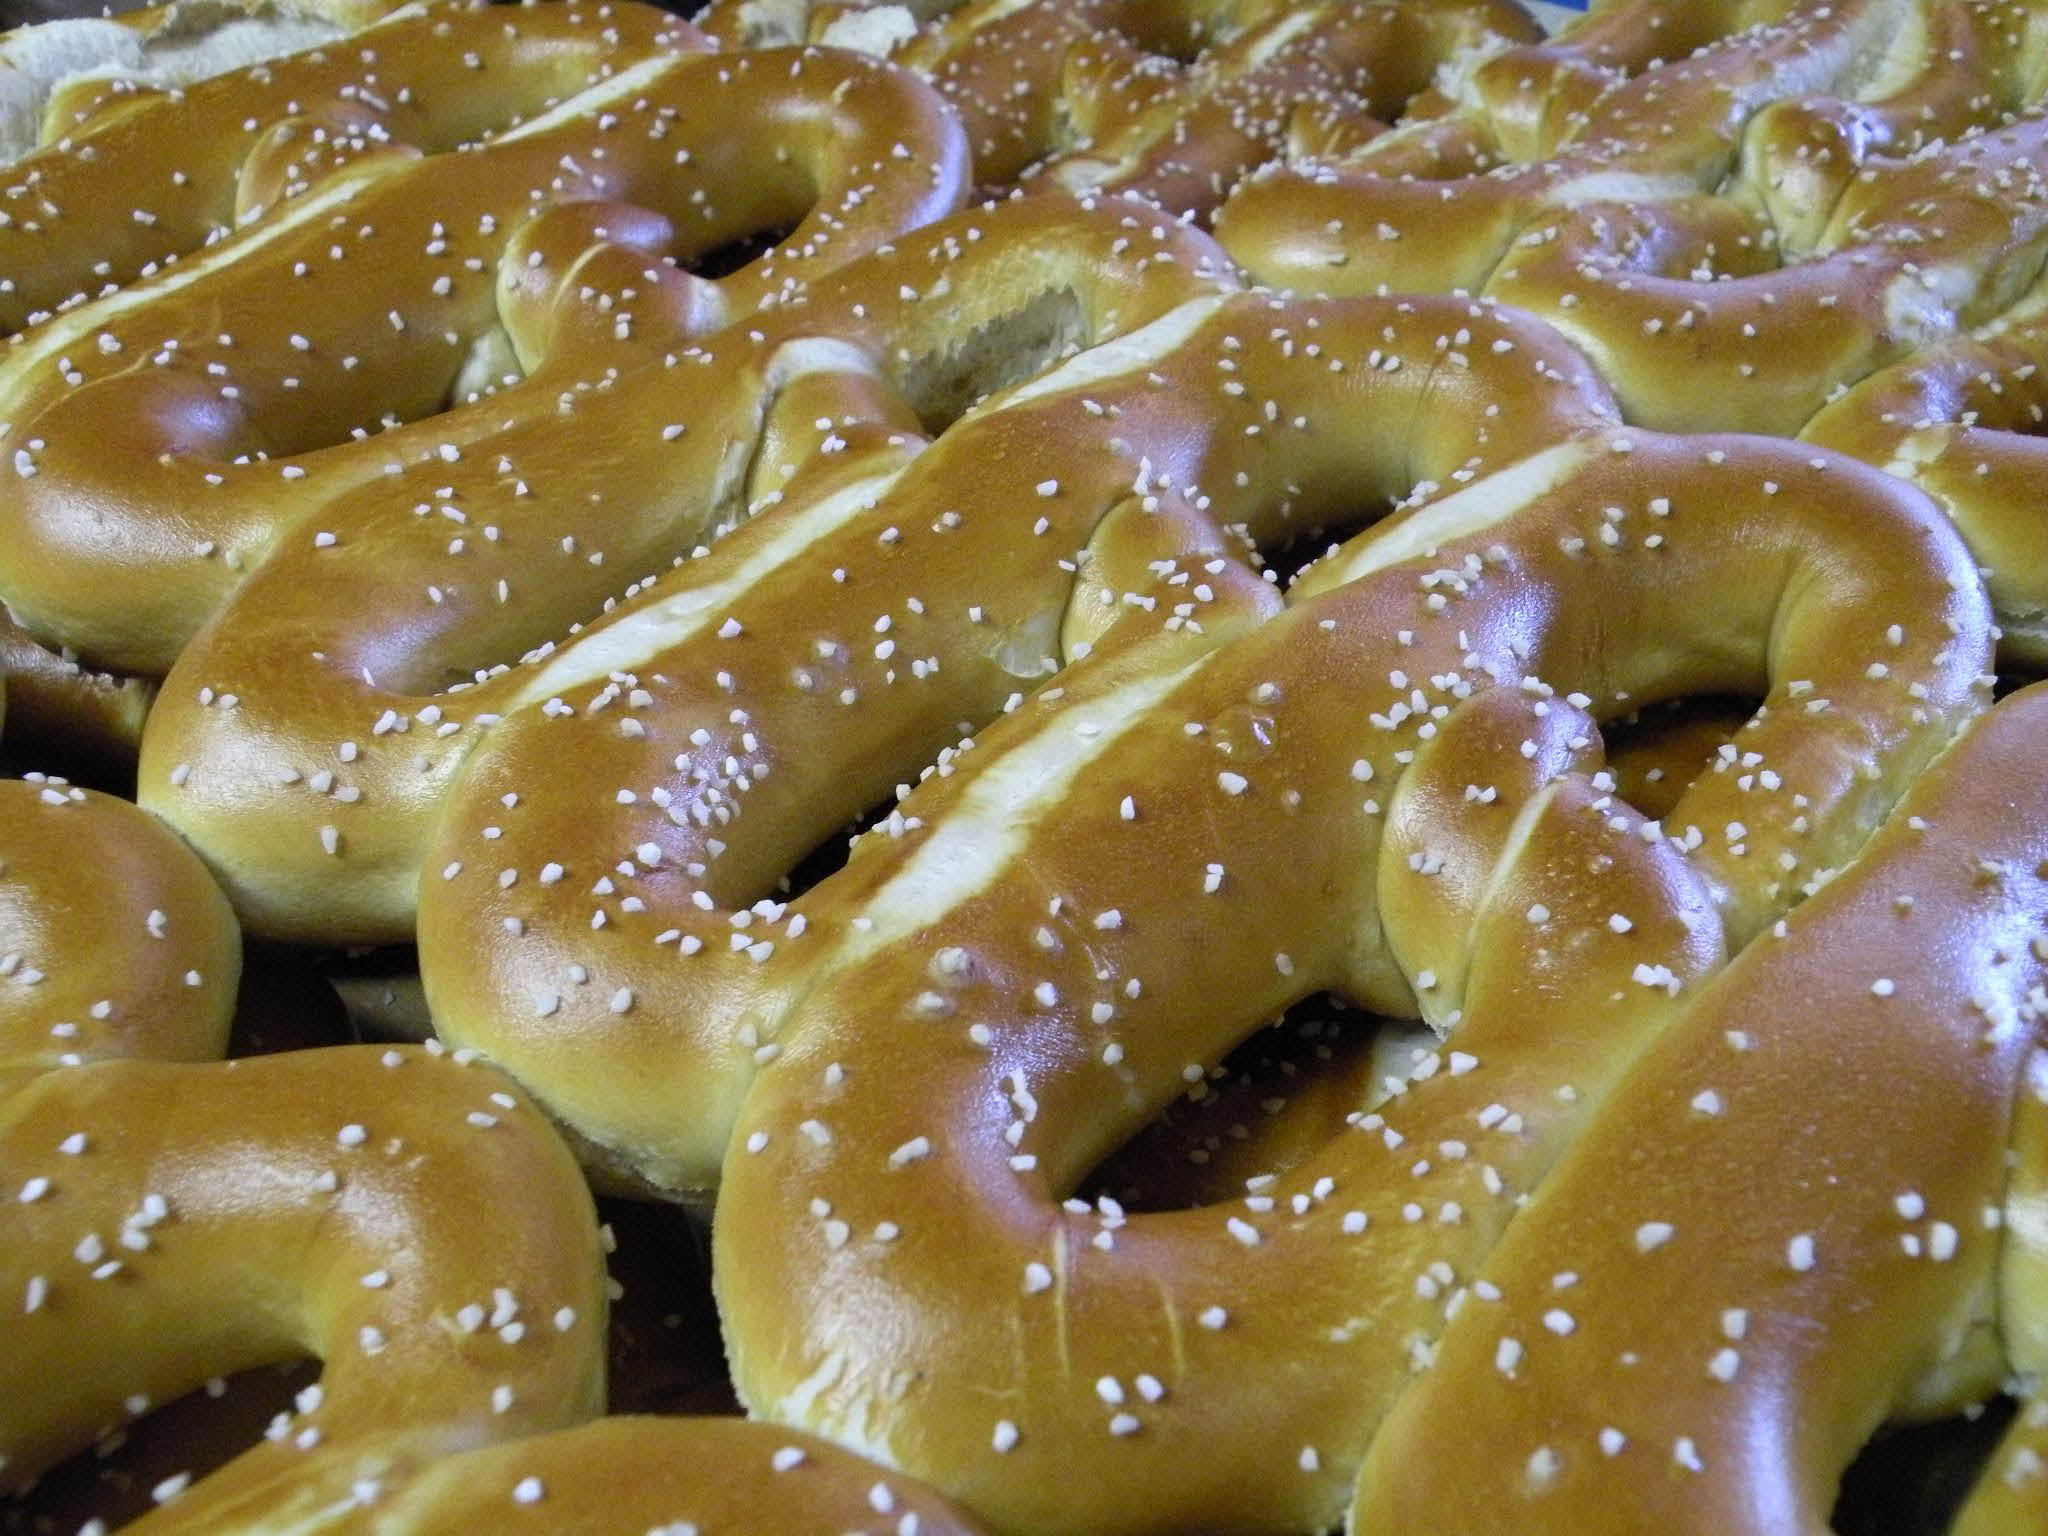 Philly Style Soft Pretzels, philly, pretzels, pretzel, philly pretzel, pretzel near me, valpak